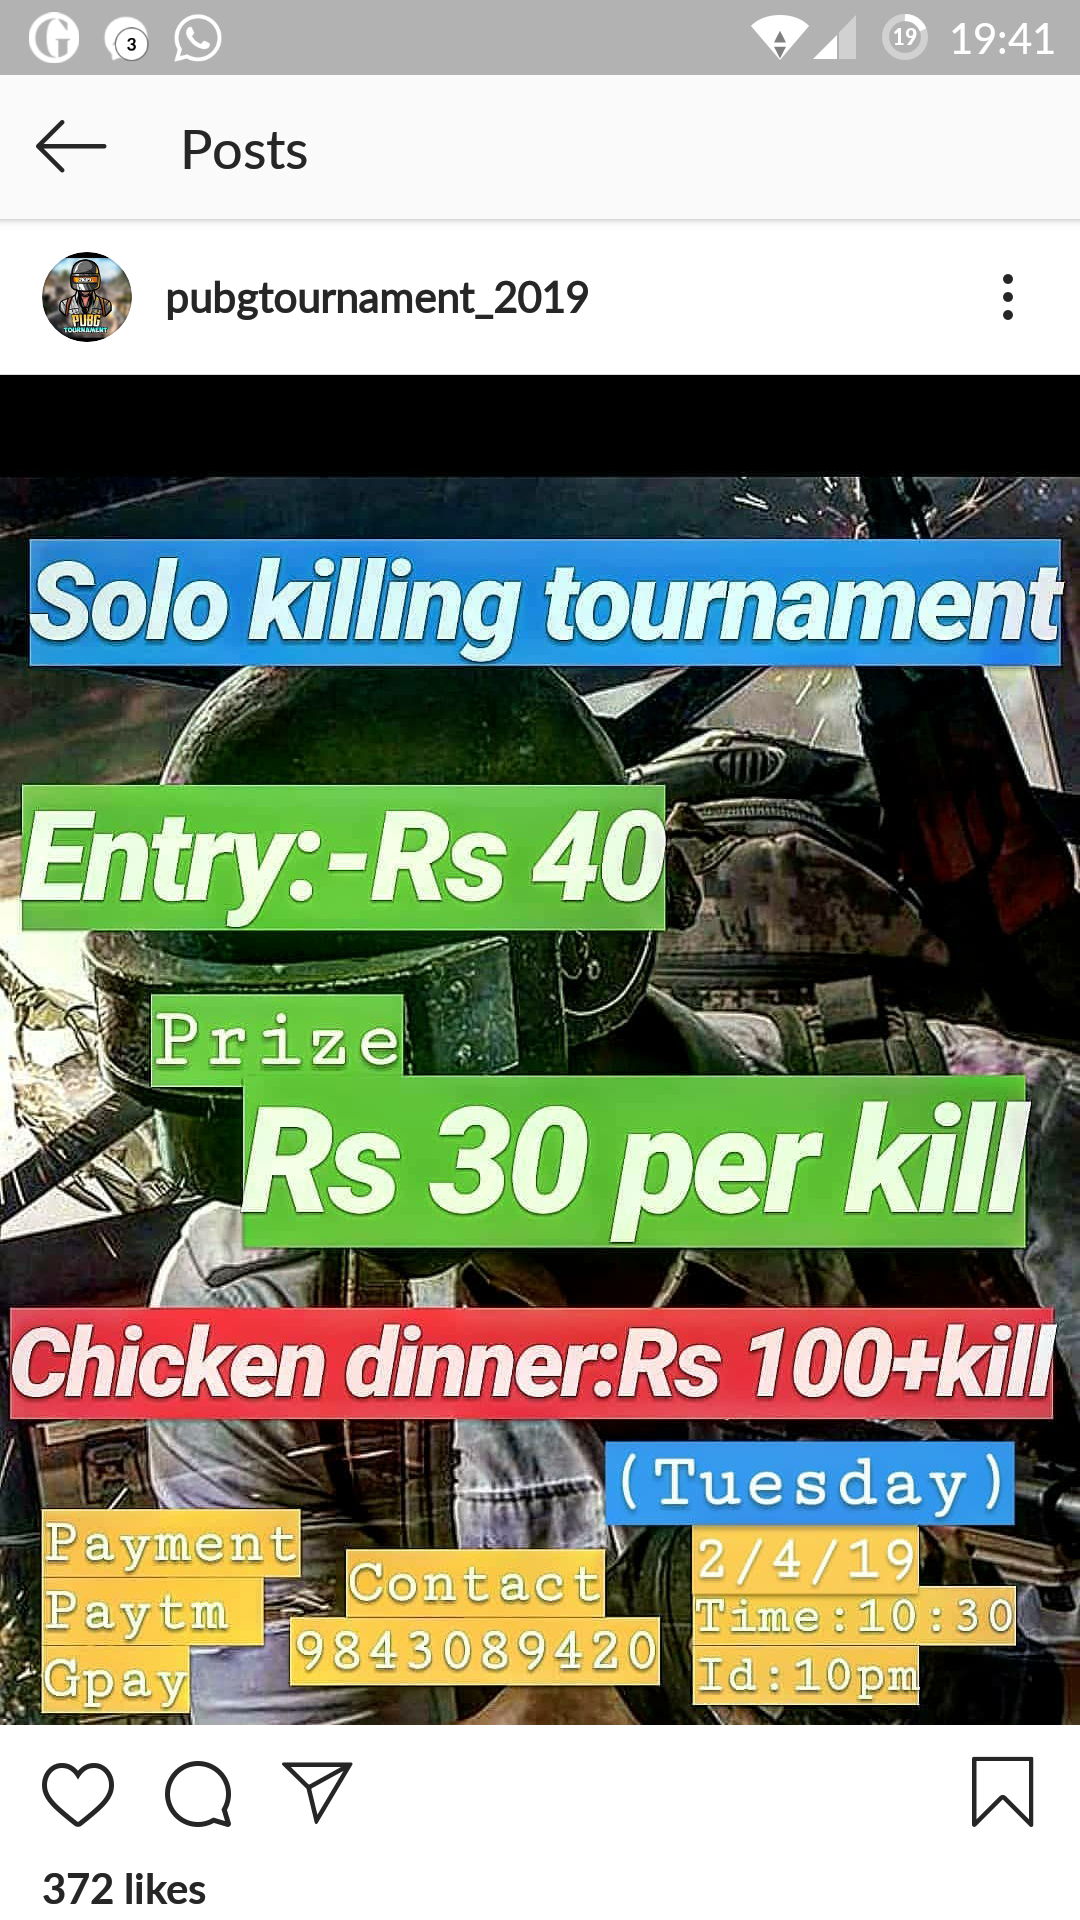 An Instagram post advertising a PUBG tournament with cash prizes in February of 2019